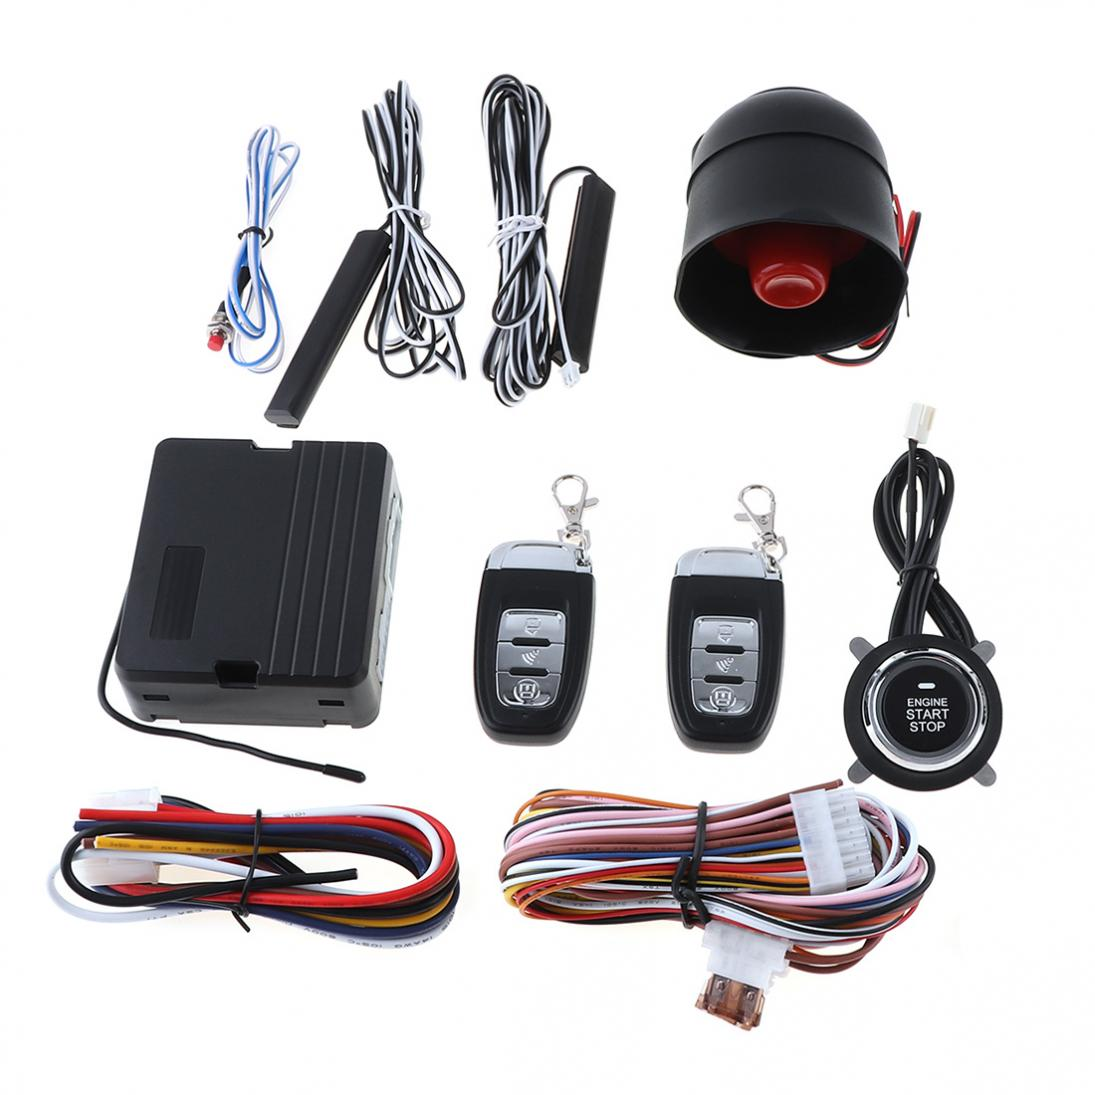 PKE Auto Car Alarm Start Stop Engine System RFID Central Lock Keyless Entry system Starter Anti-theft Engine Start Stop button car auto engine start stop button smart key alarm security keyless entry lock or unlock by passwords pke auto central lock car